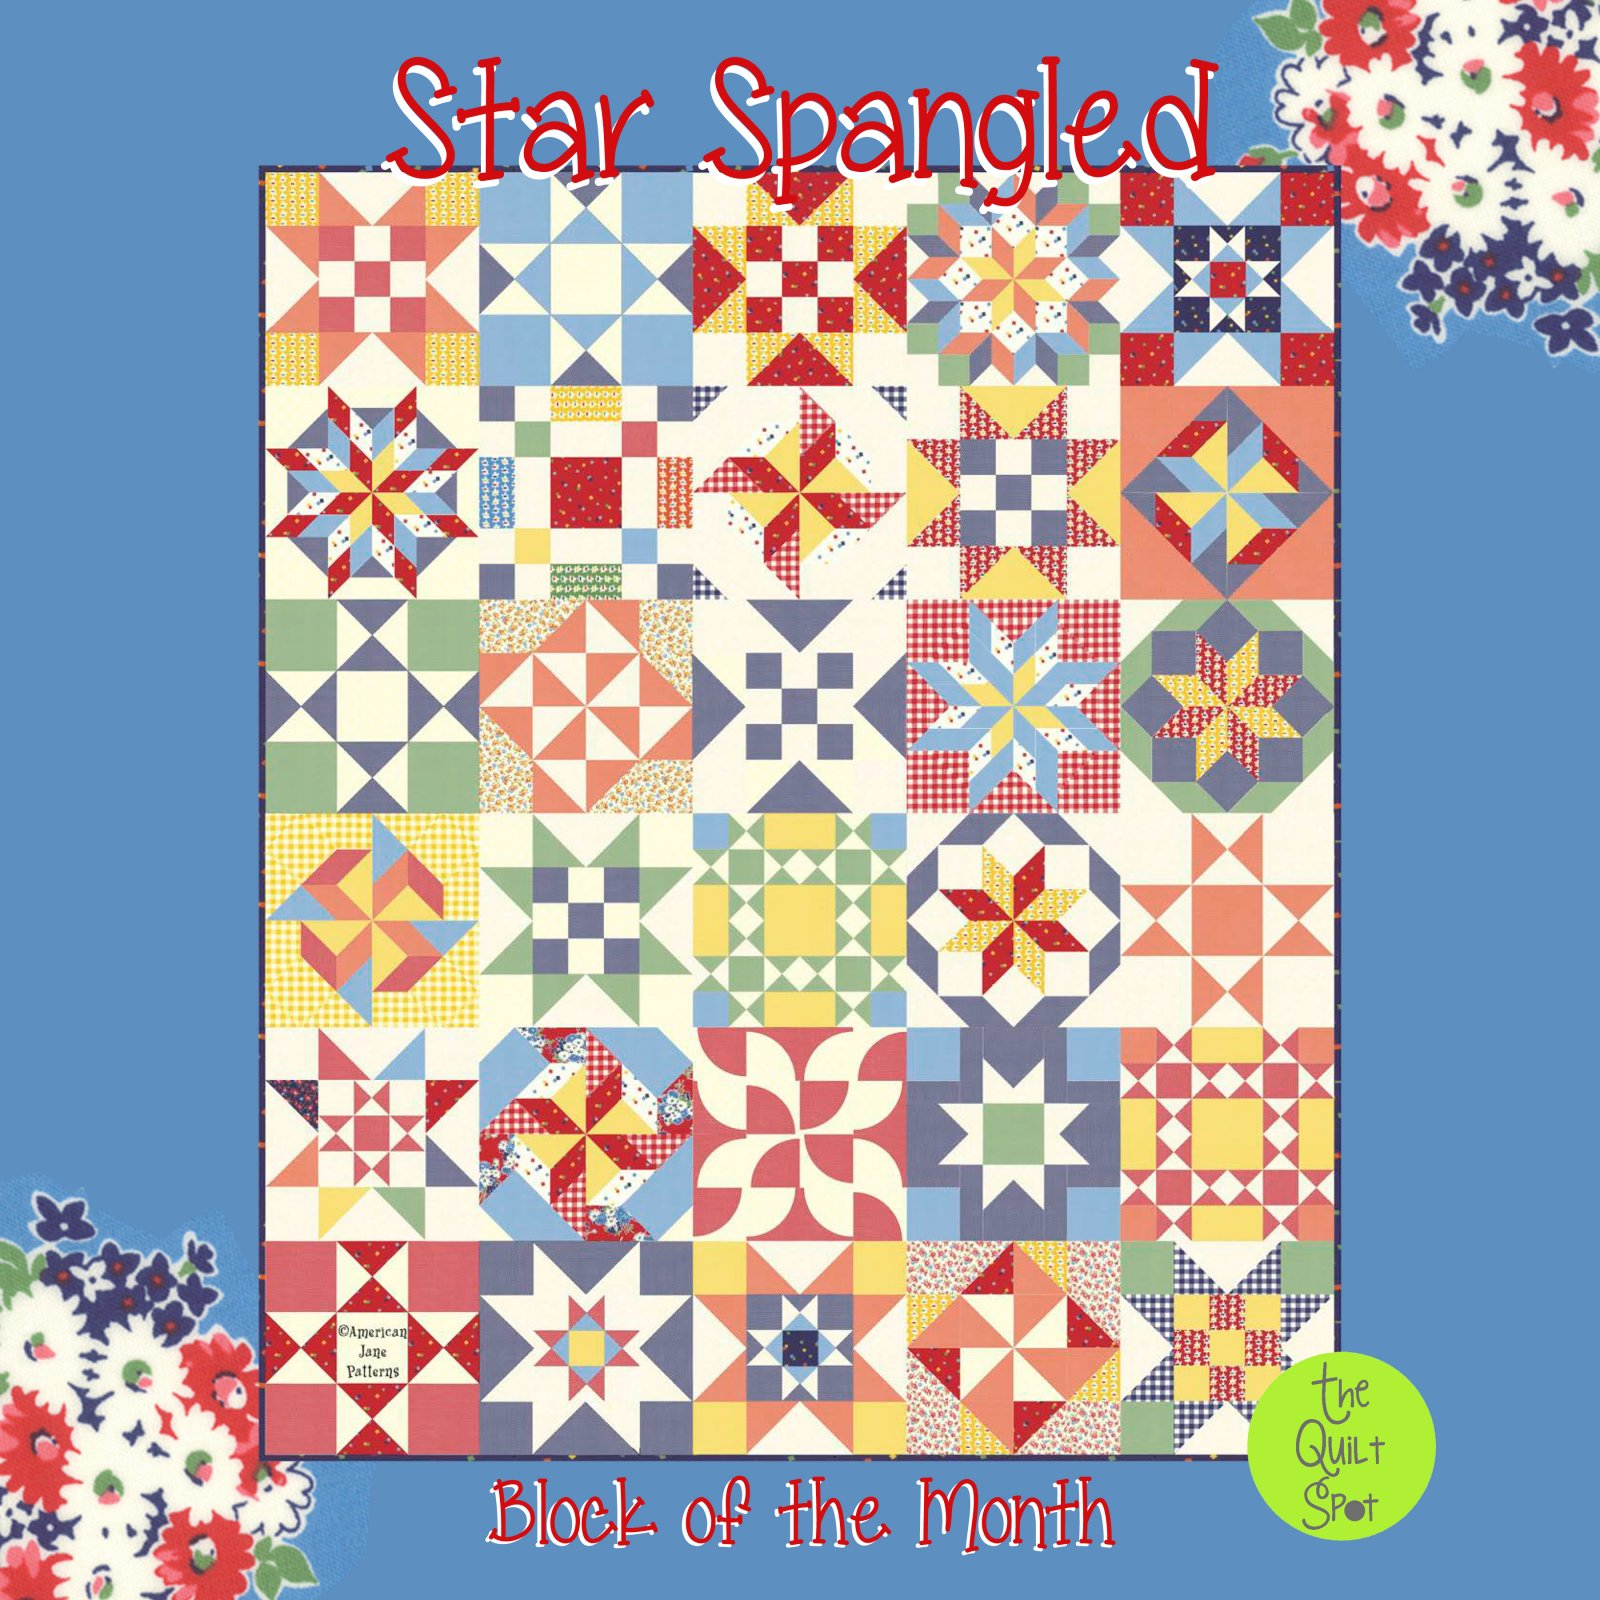 Star Spangled Block of the Month